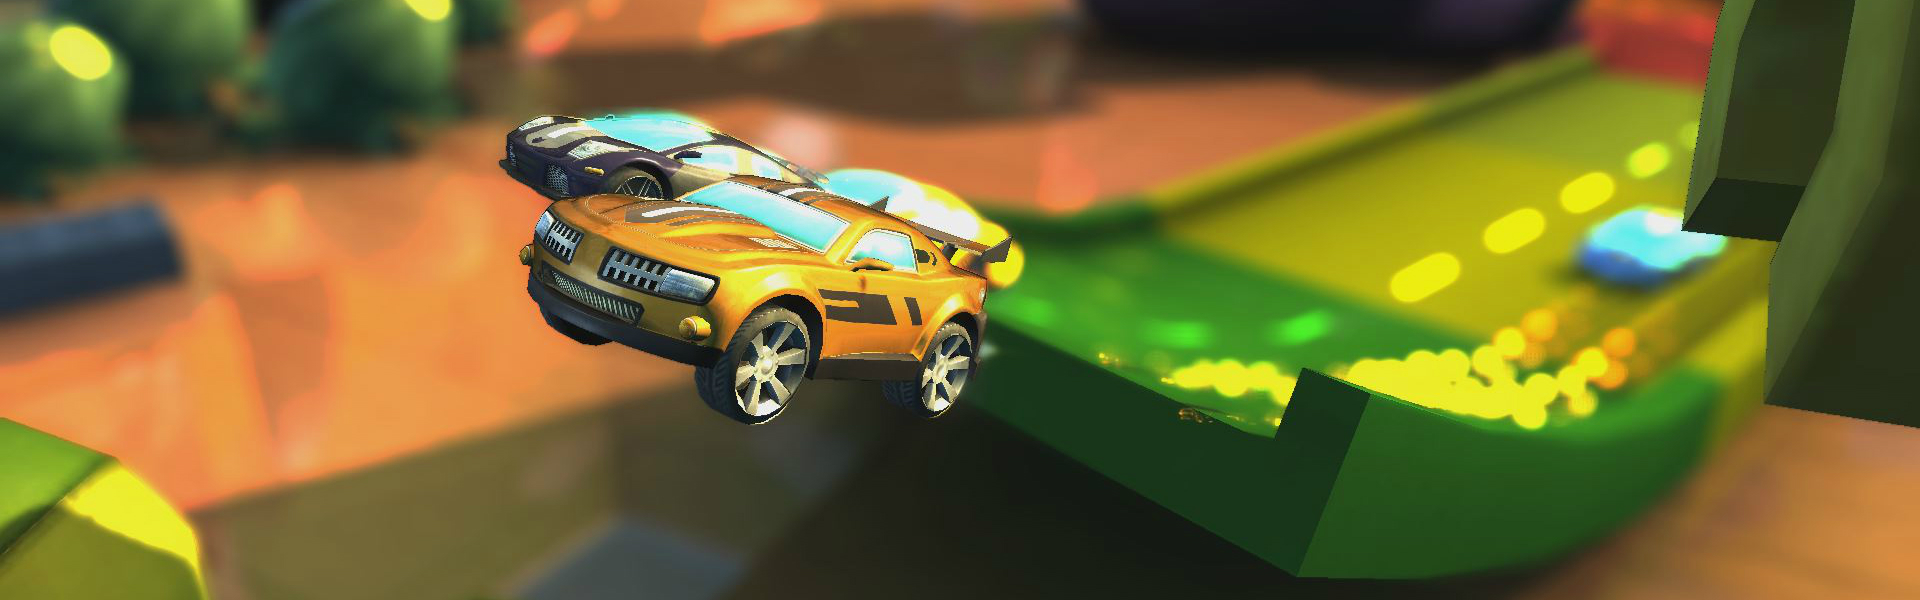 super-toy-cars-featured.jpg